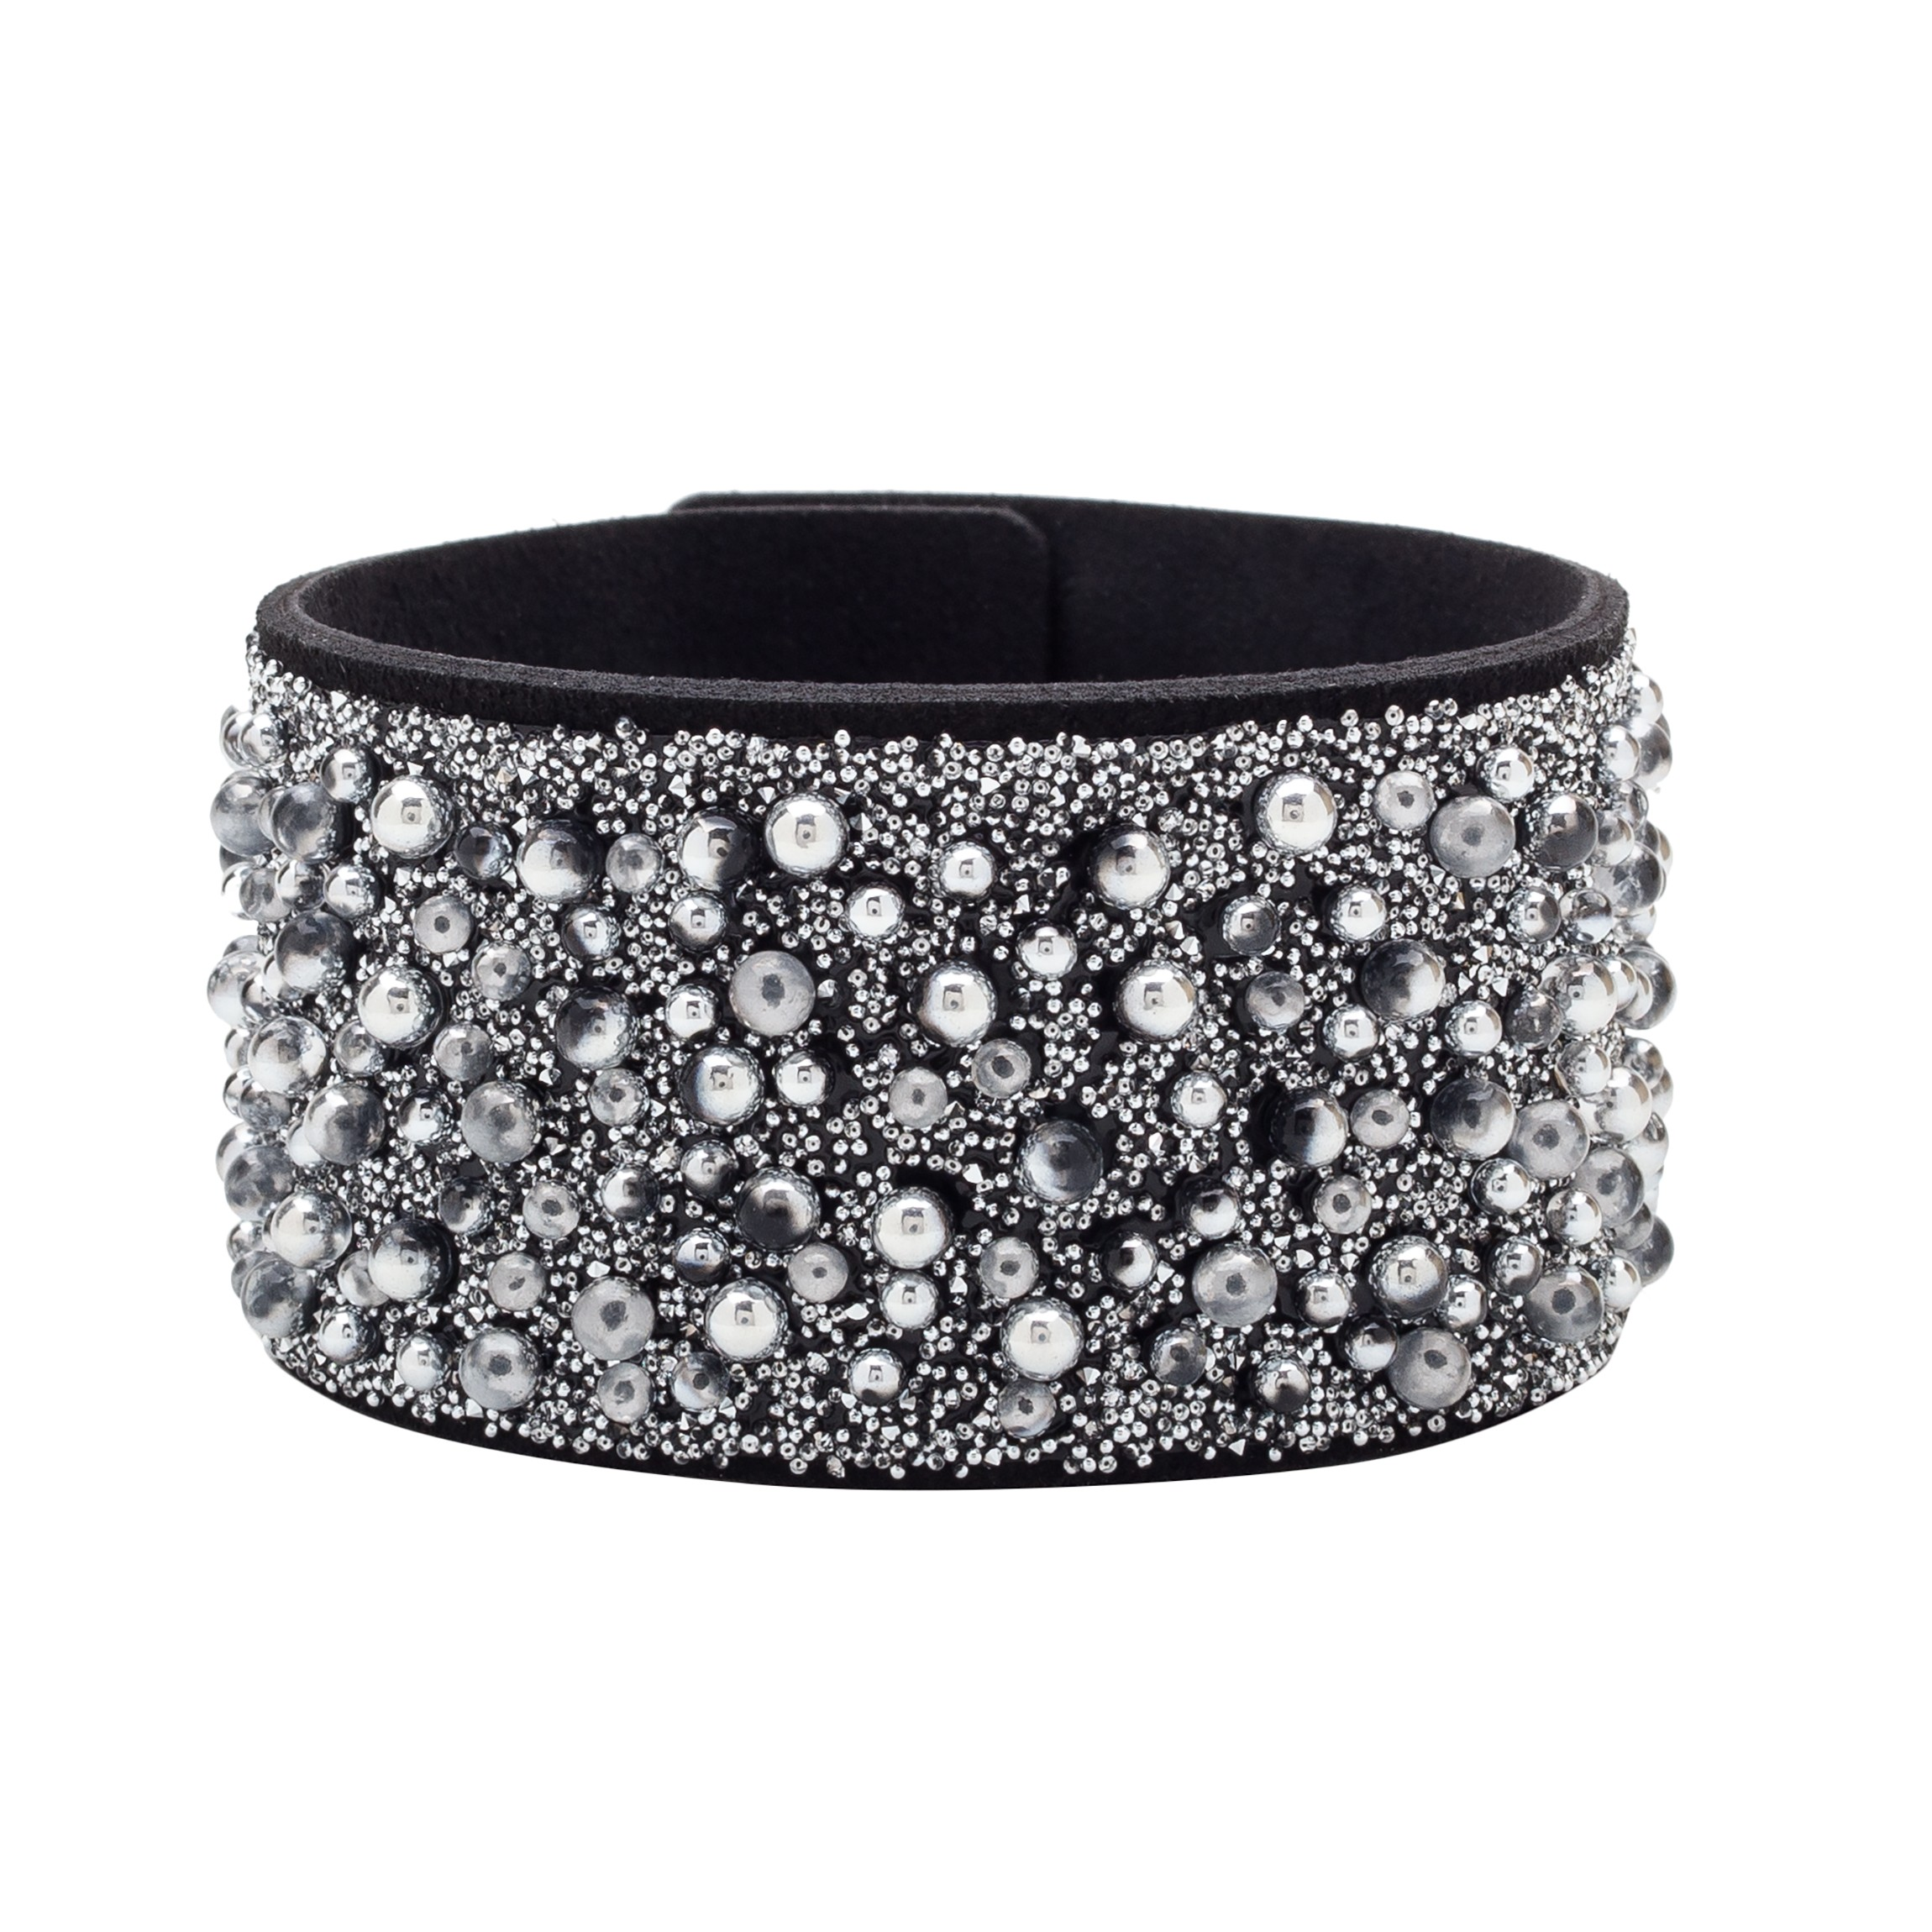 BRACELET WITH ALCANTARA AND SWAROVSKI CRY GALUCHAT STONES – MODEL 10